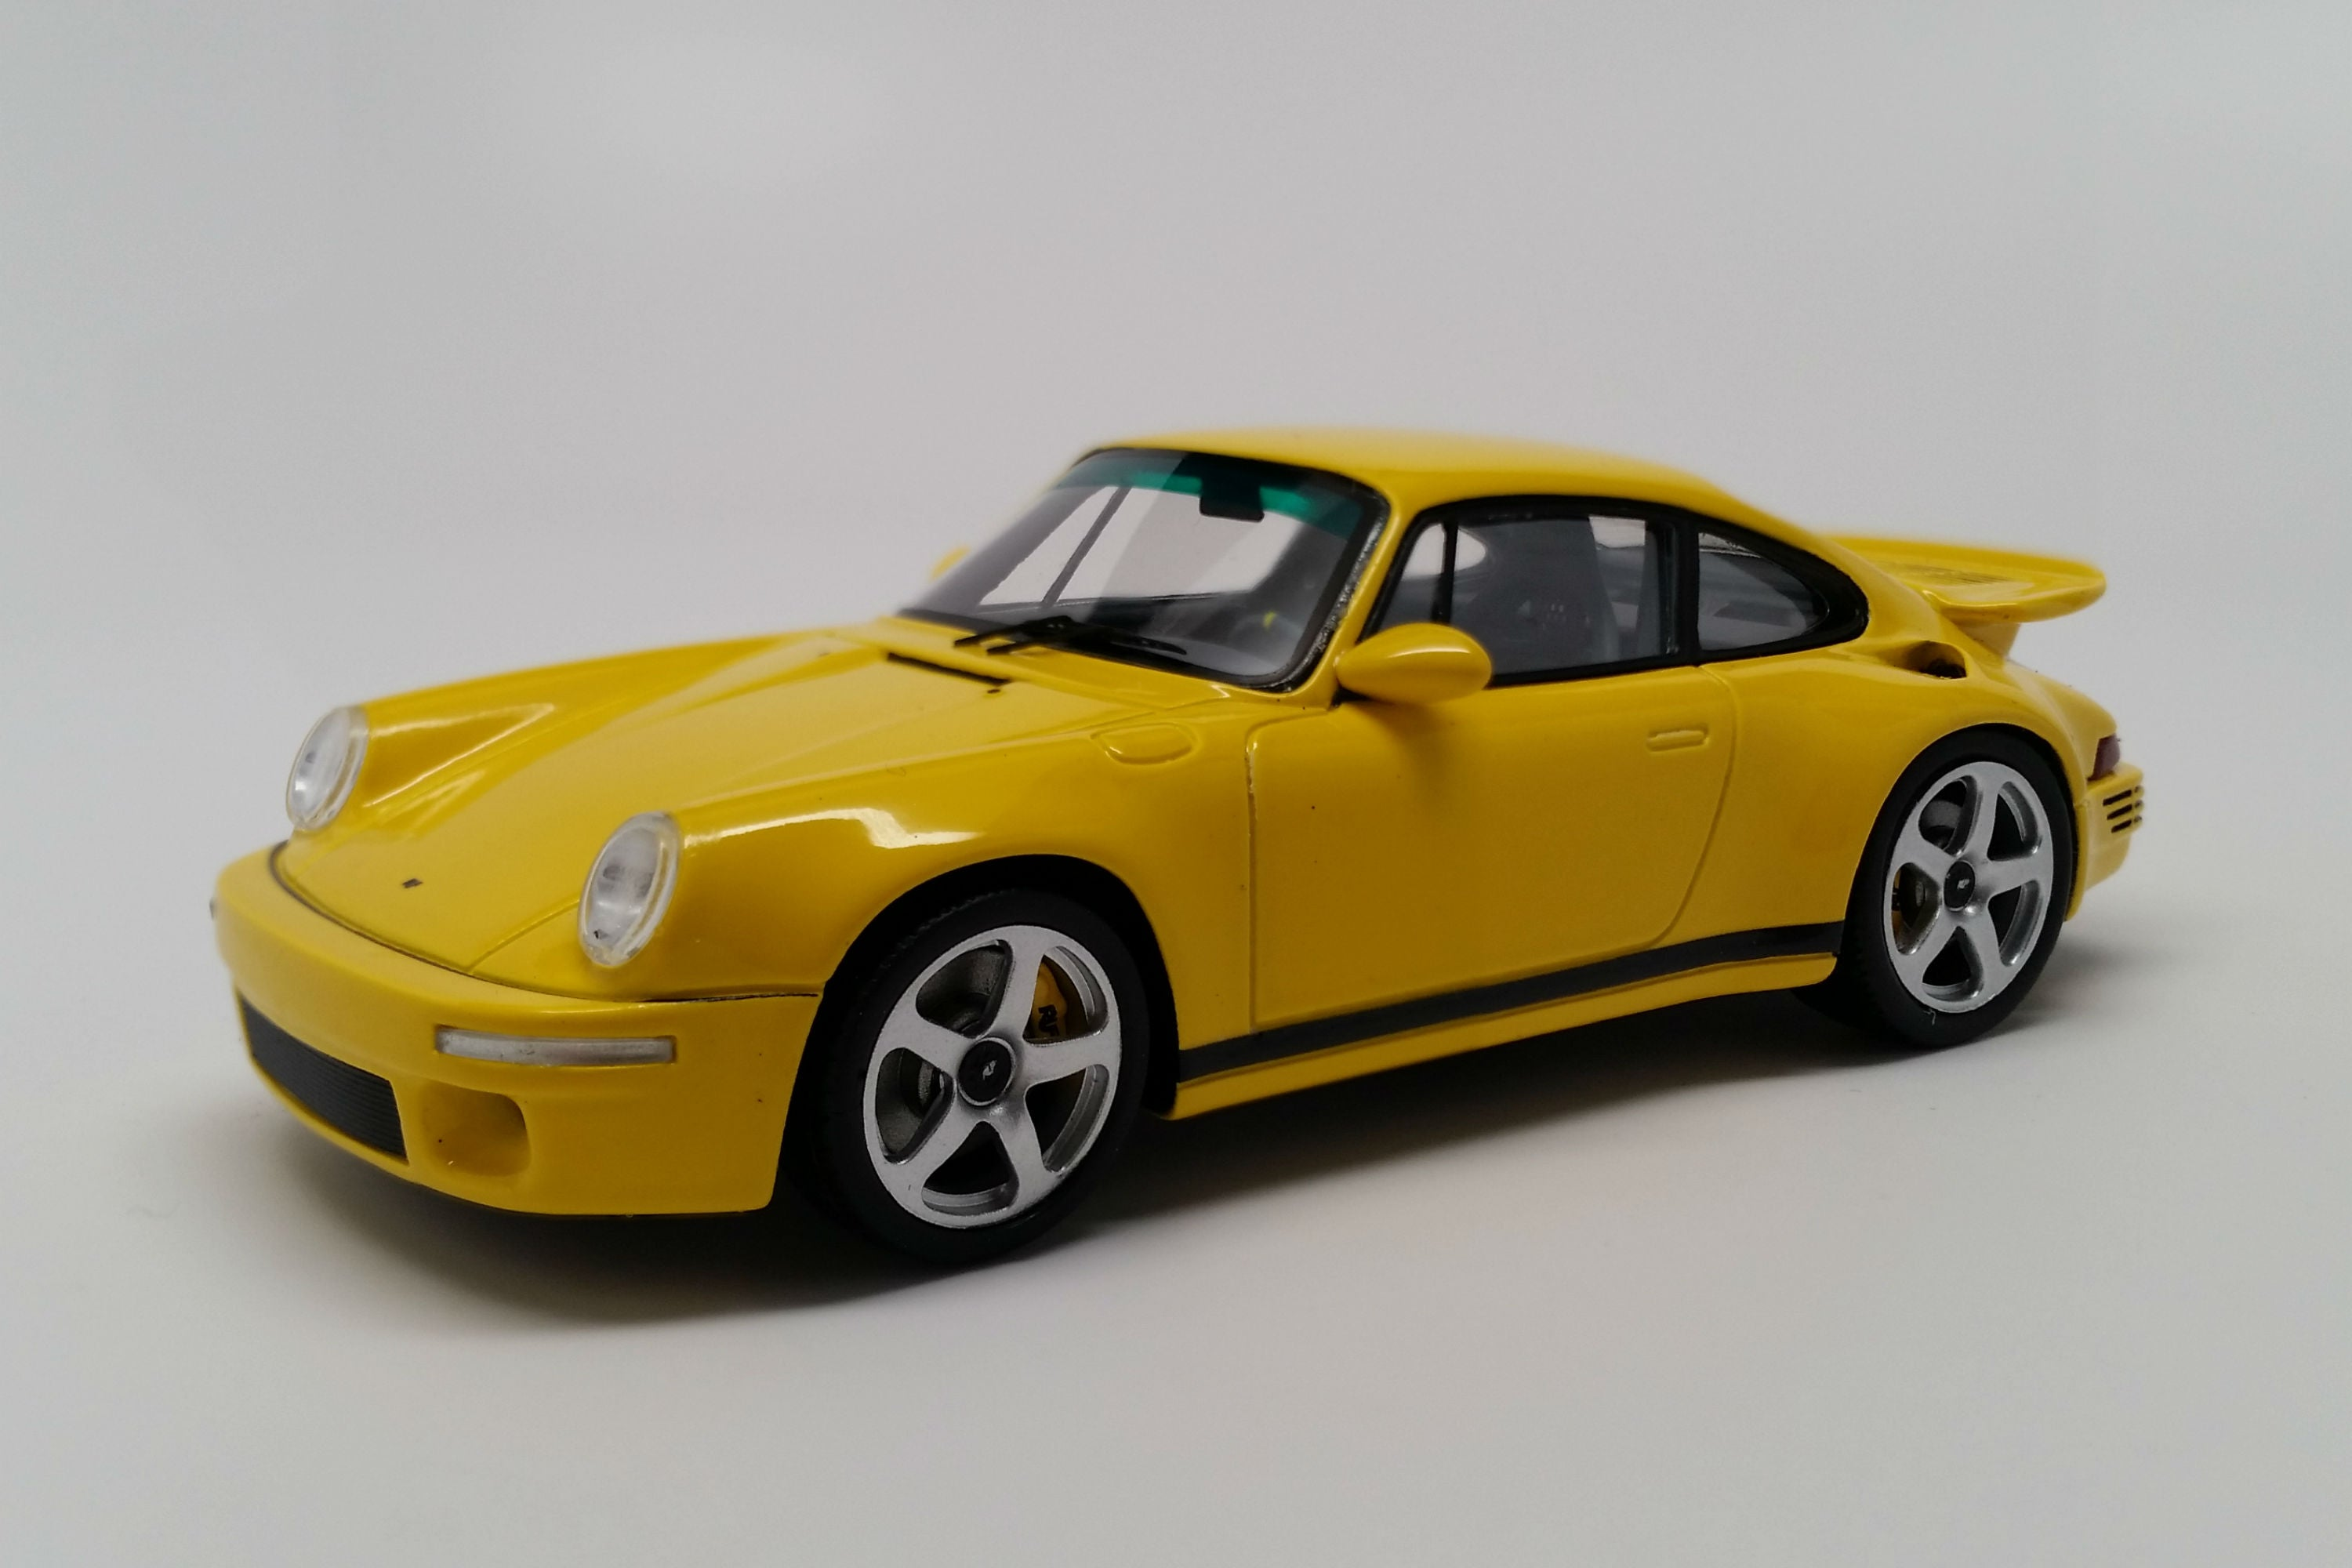 Ruf CTR (2017) | 1:43 Scale Model Car by Spark | Front Quarter